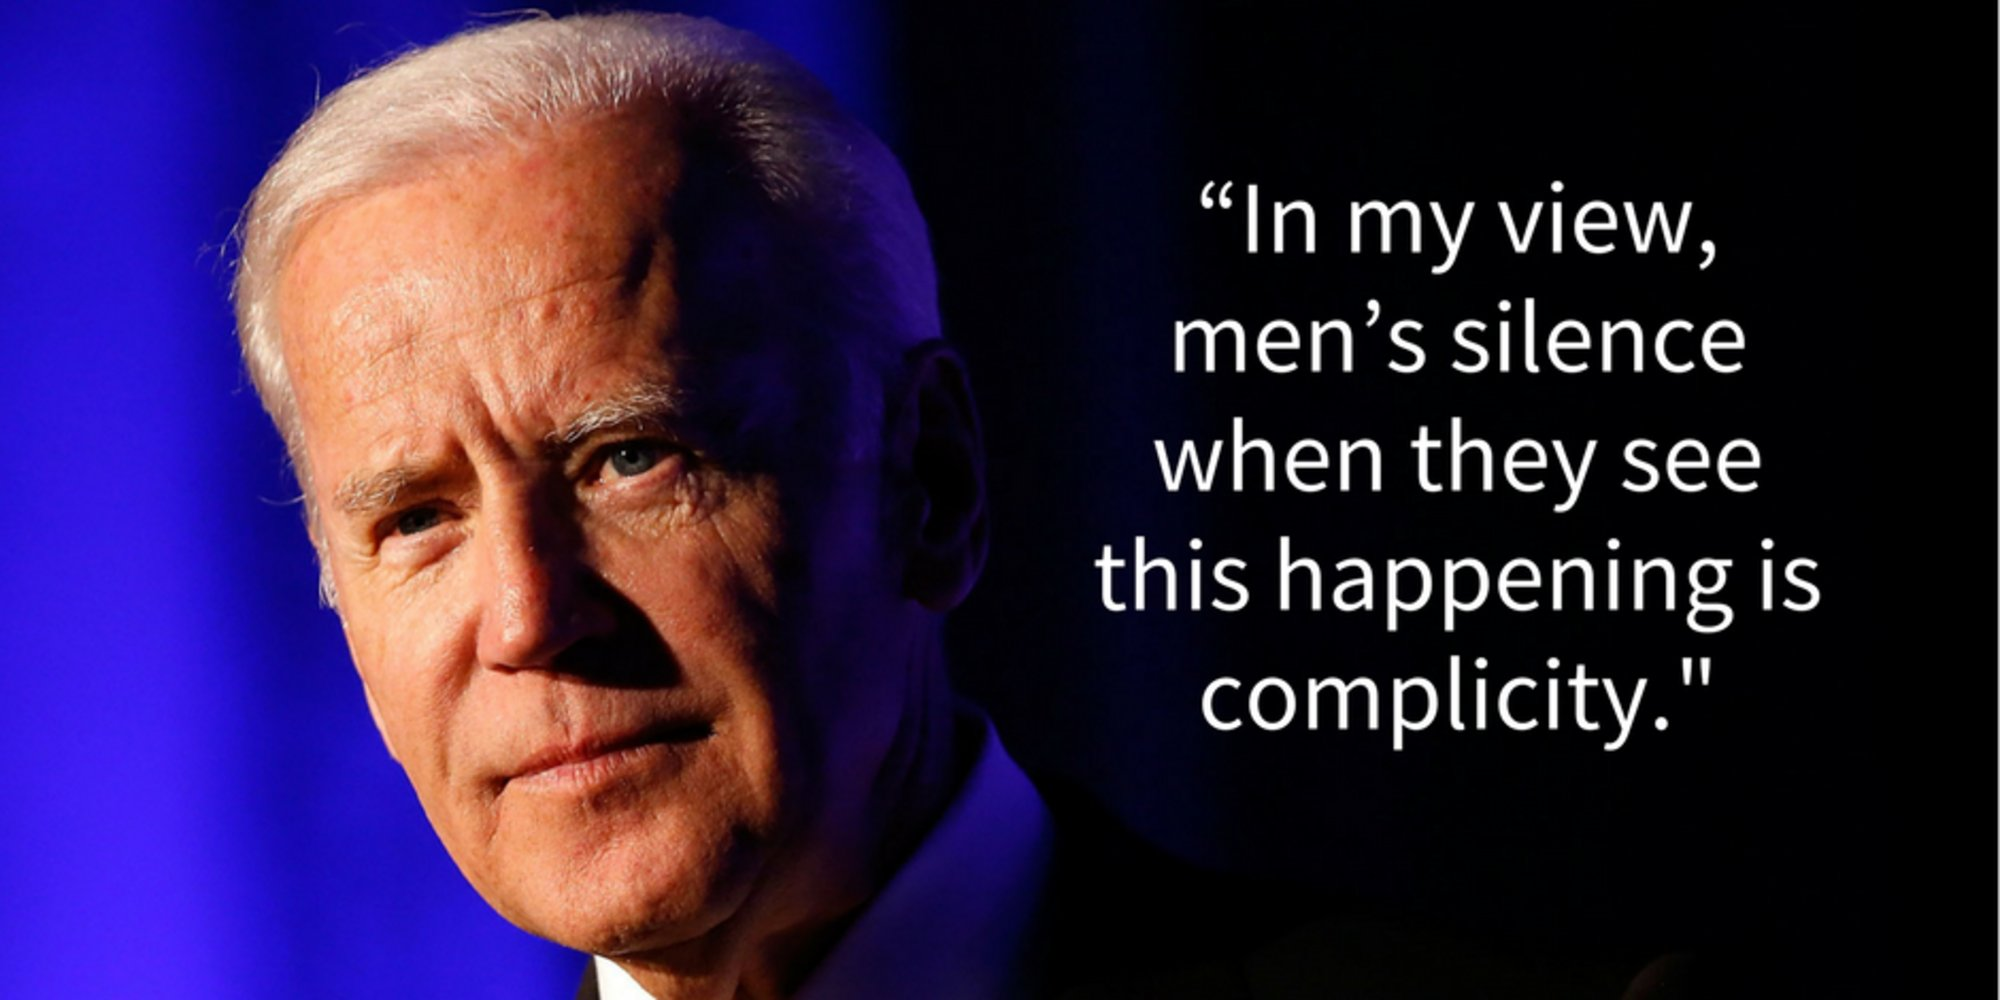 Joe Biden reminds men just how important they are in the fight against sexual assault https://t.co/gWOwmWdxm6 https://t.co/PqQa51Uaa5